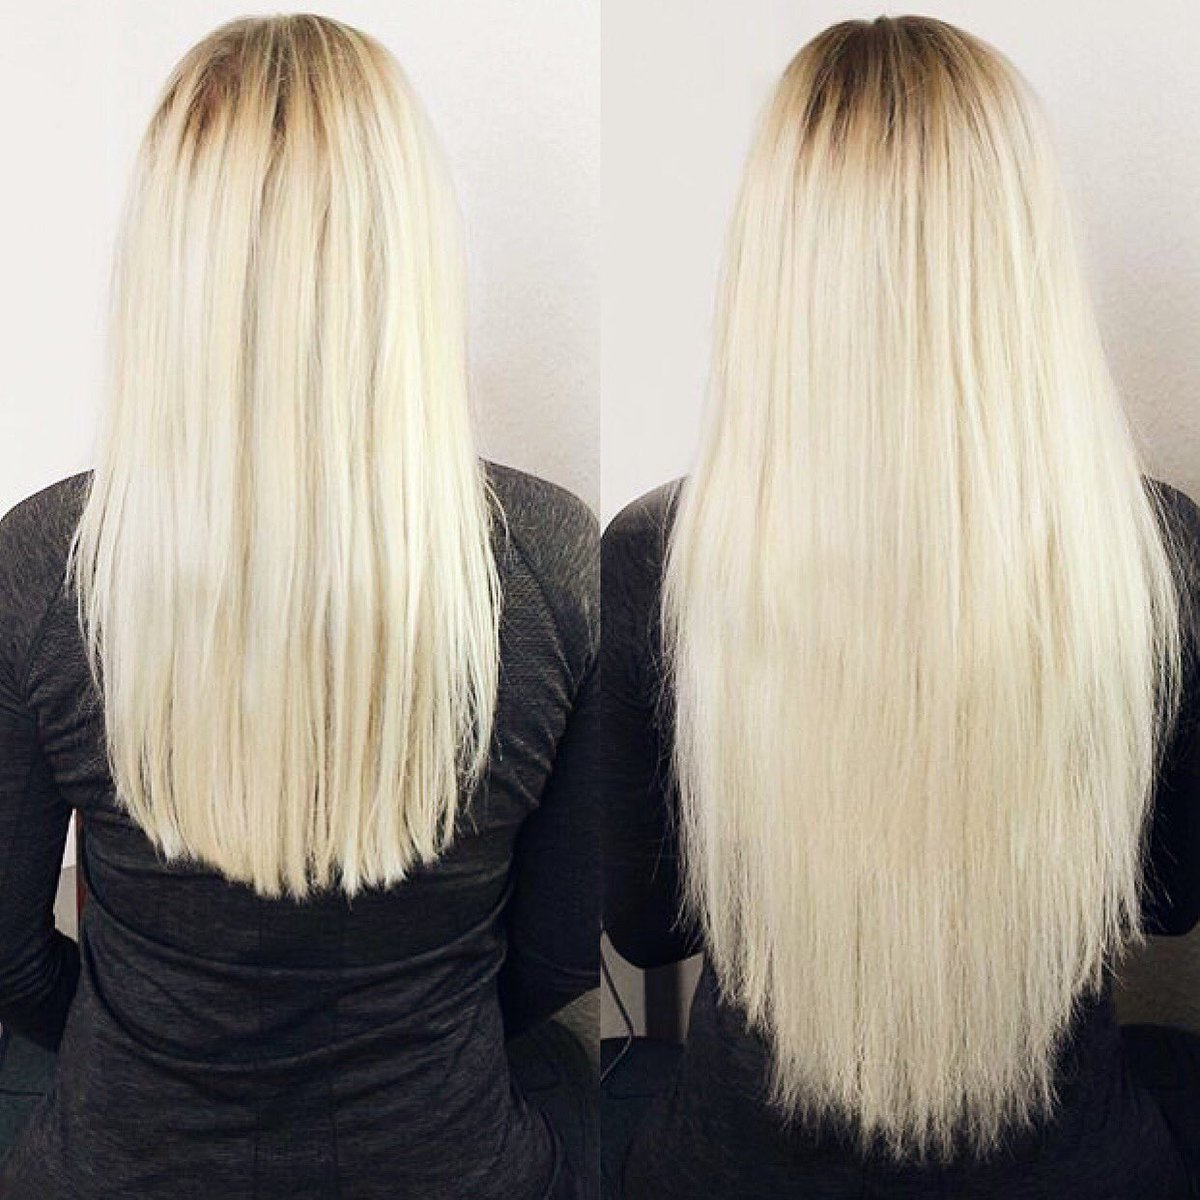 Foxy Locks Hair On Twitter Amazing Before And After Shinylipstv